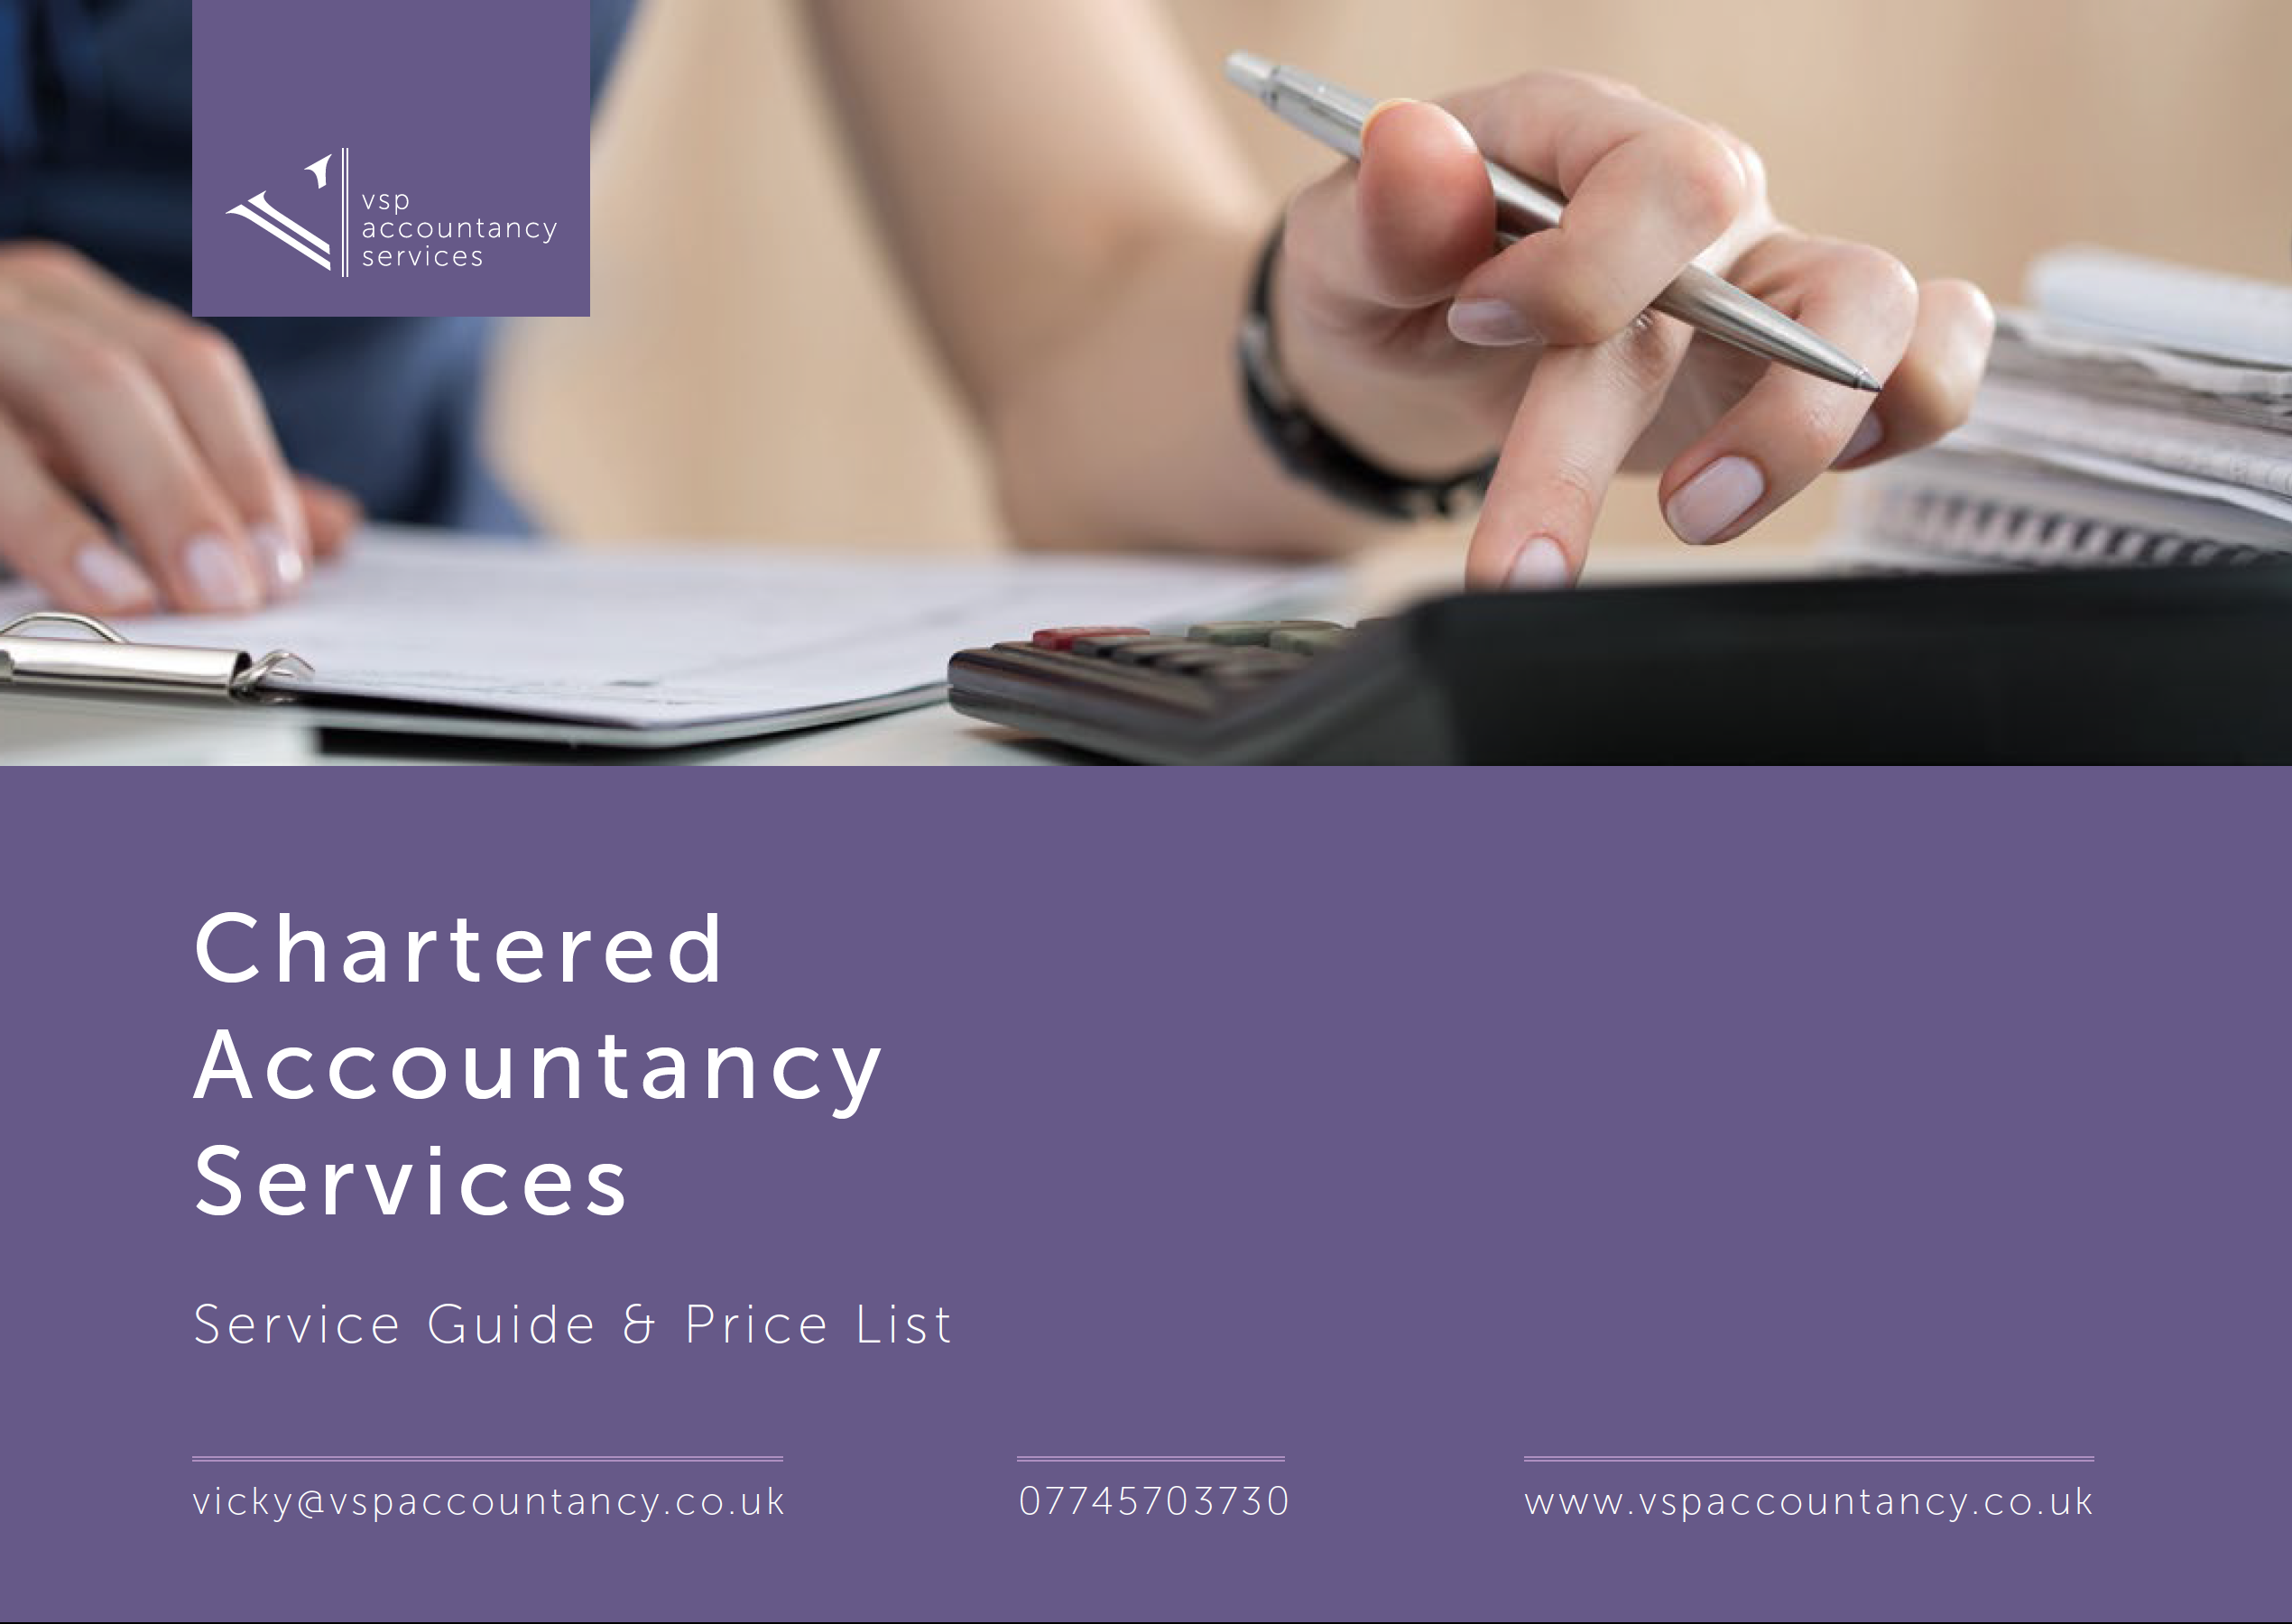 VSP Accountancy Services Guide